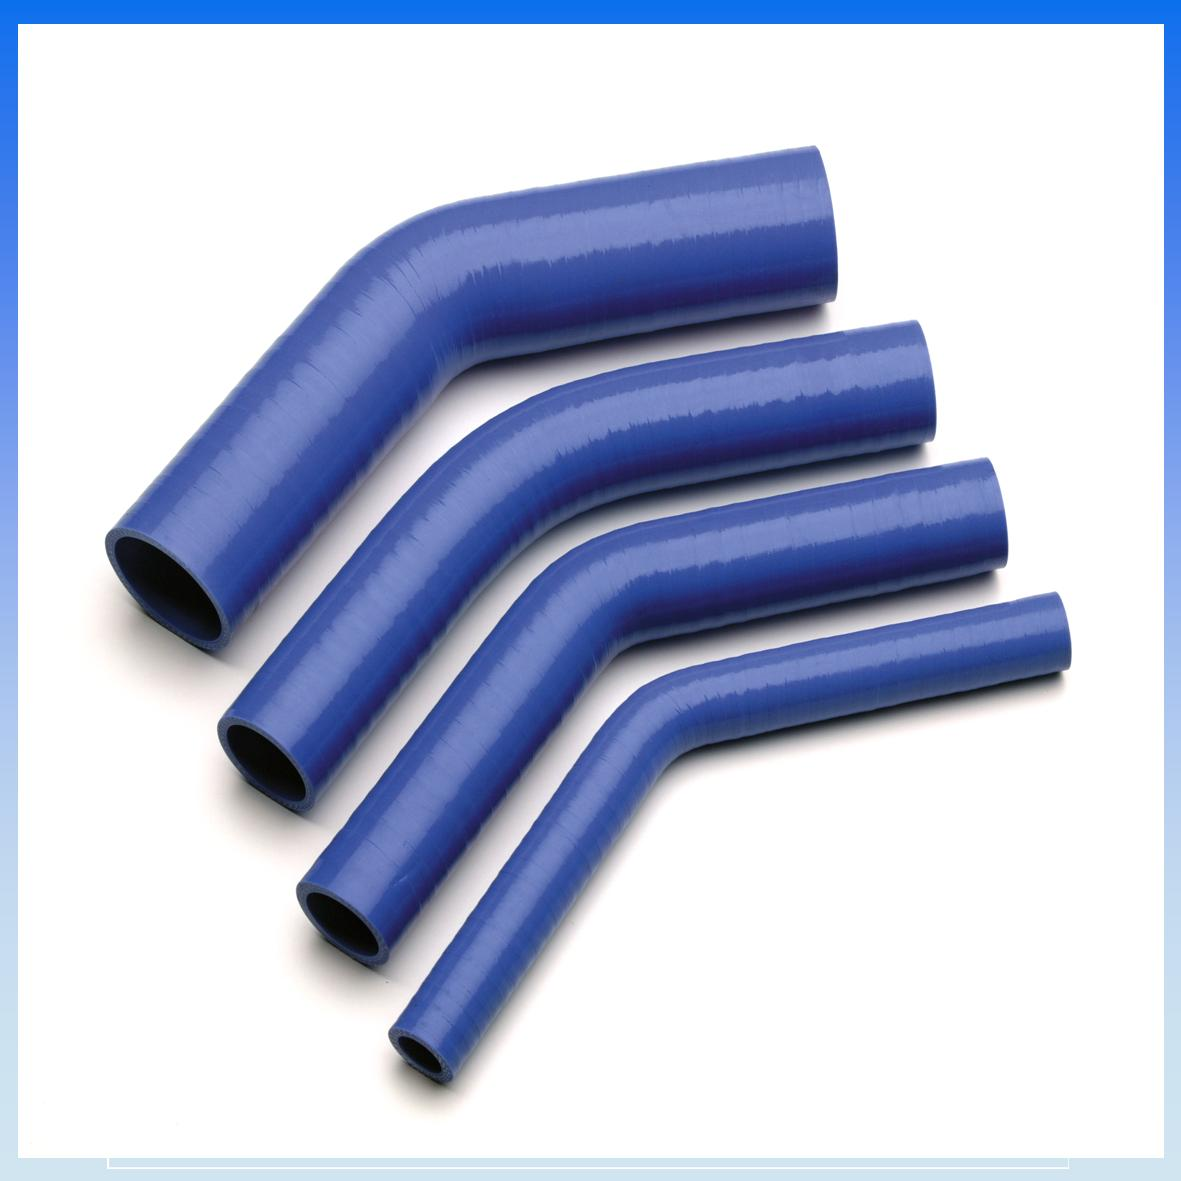 25mm Blue Flouro Lined Silicone Straight Fuel and Oil Hose